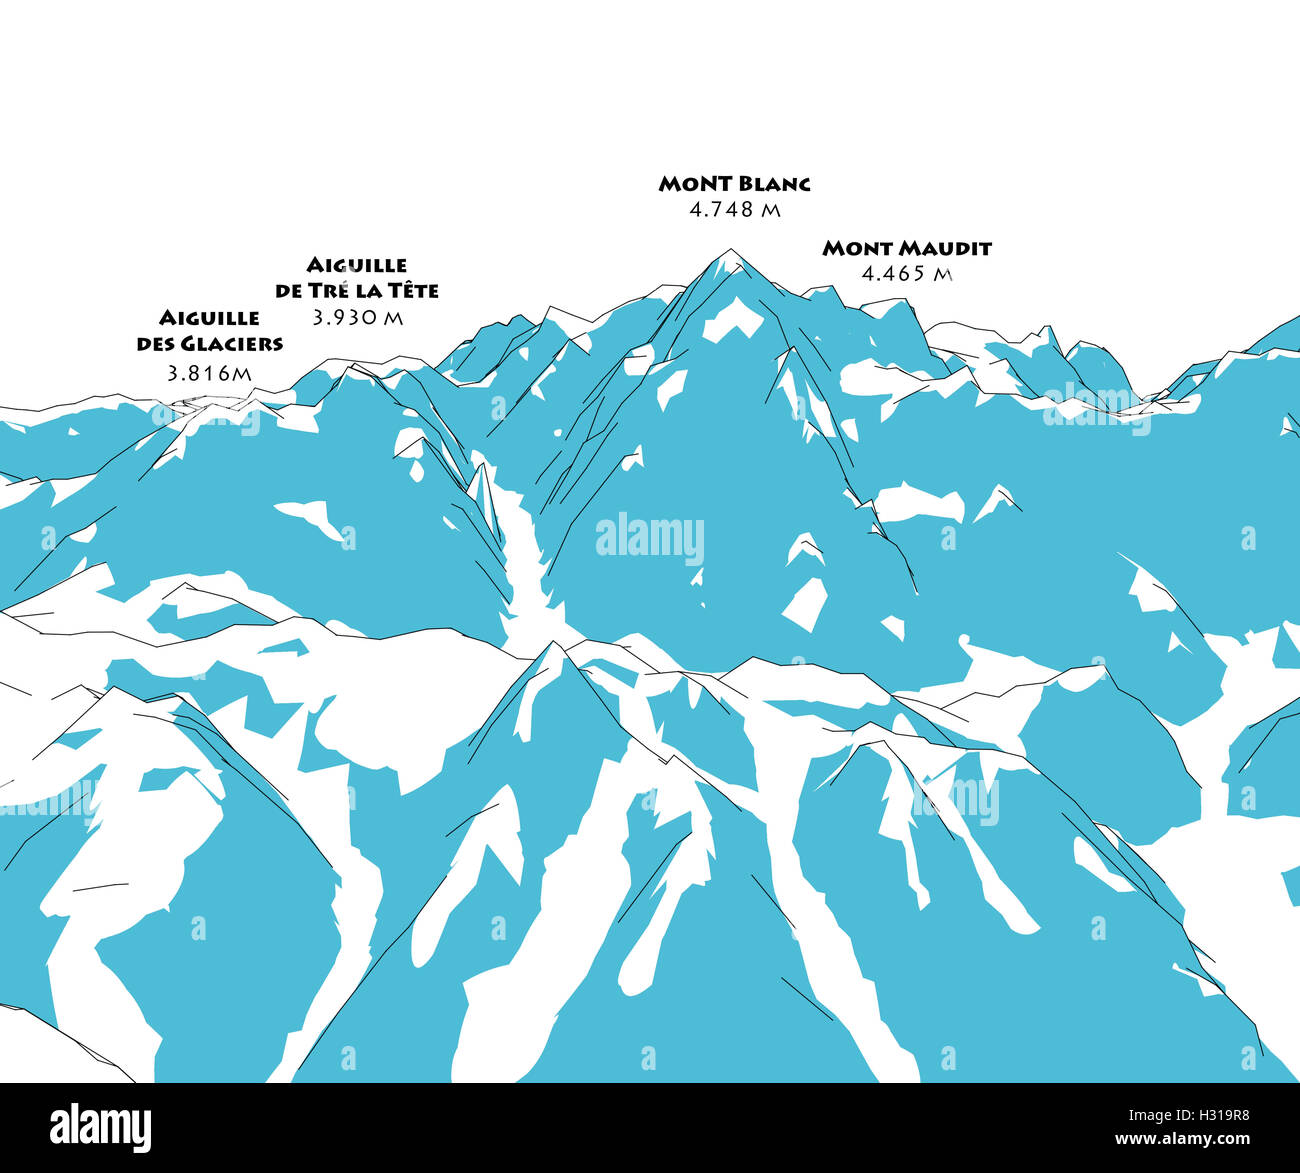 Map Of Italy With Mountains.Mont Blanc Height Relief Mountains Italy And France Stock Photo